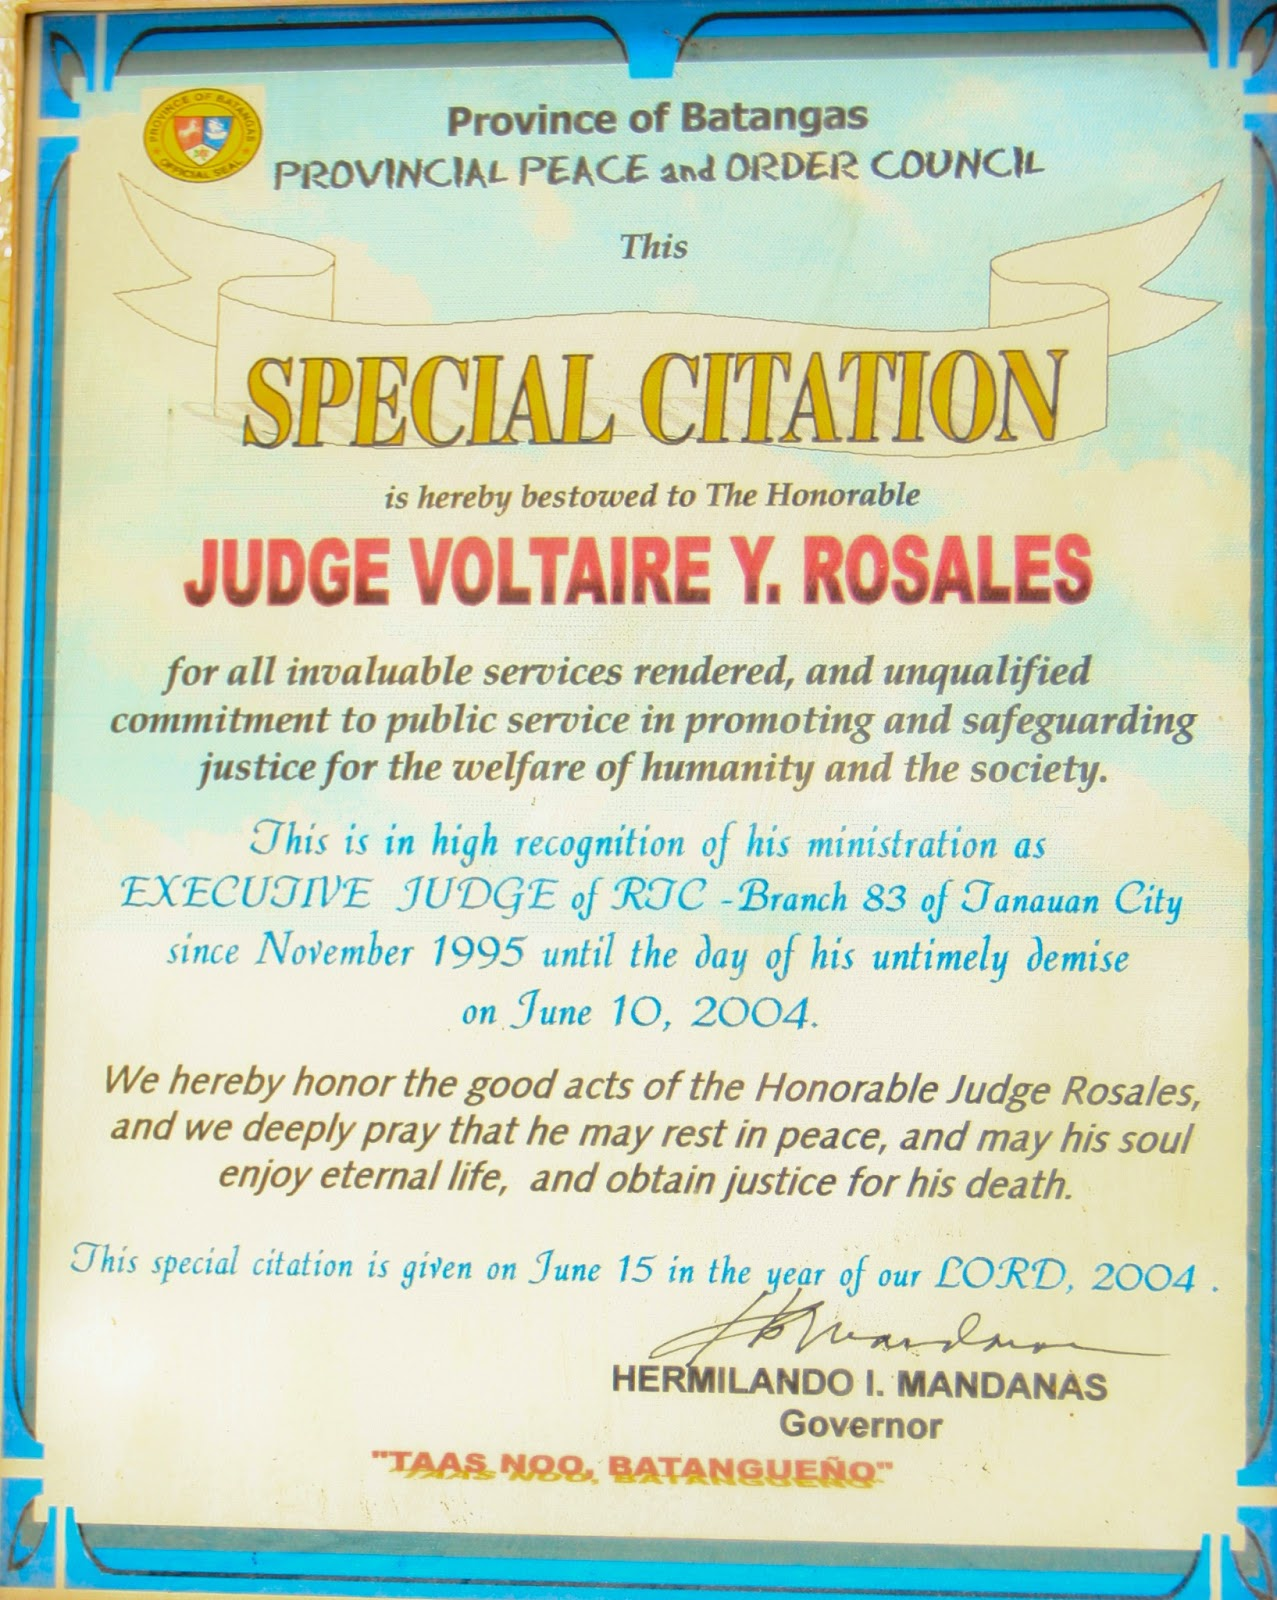 a special citation given by the provincial government of batangas with a resolution by the provincial legislature sangguniang panlalawigan and the